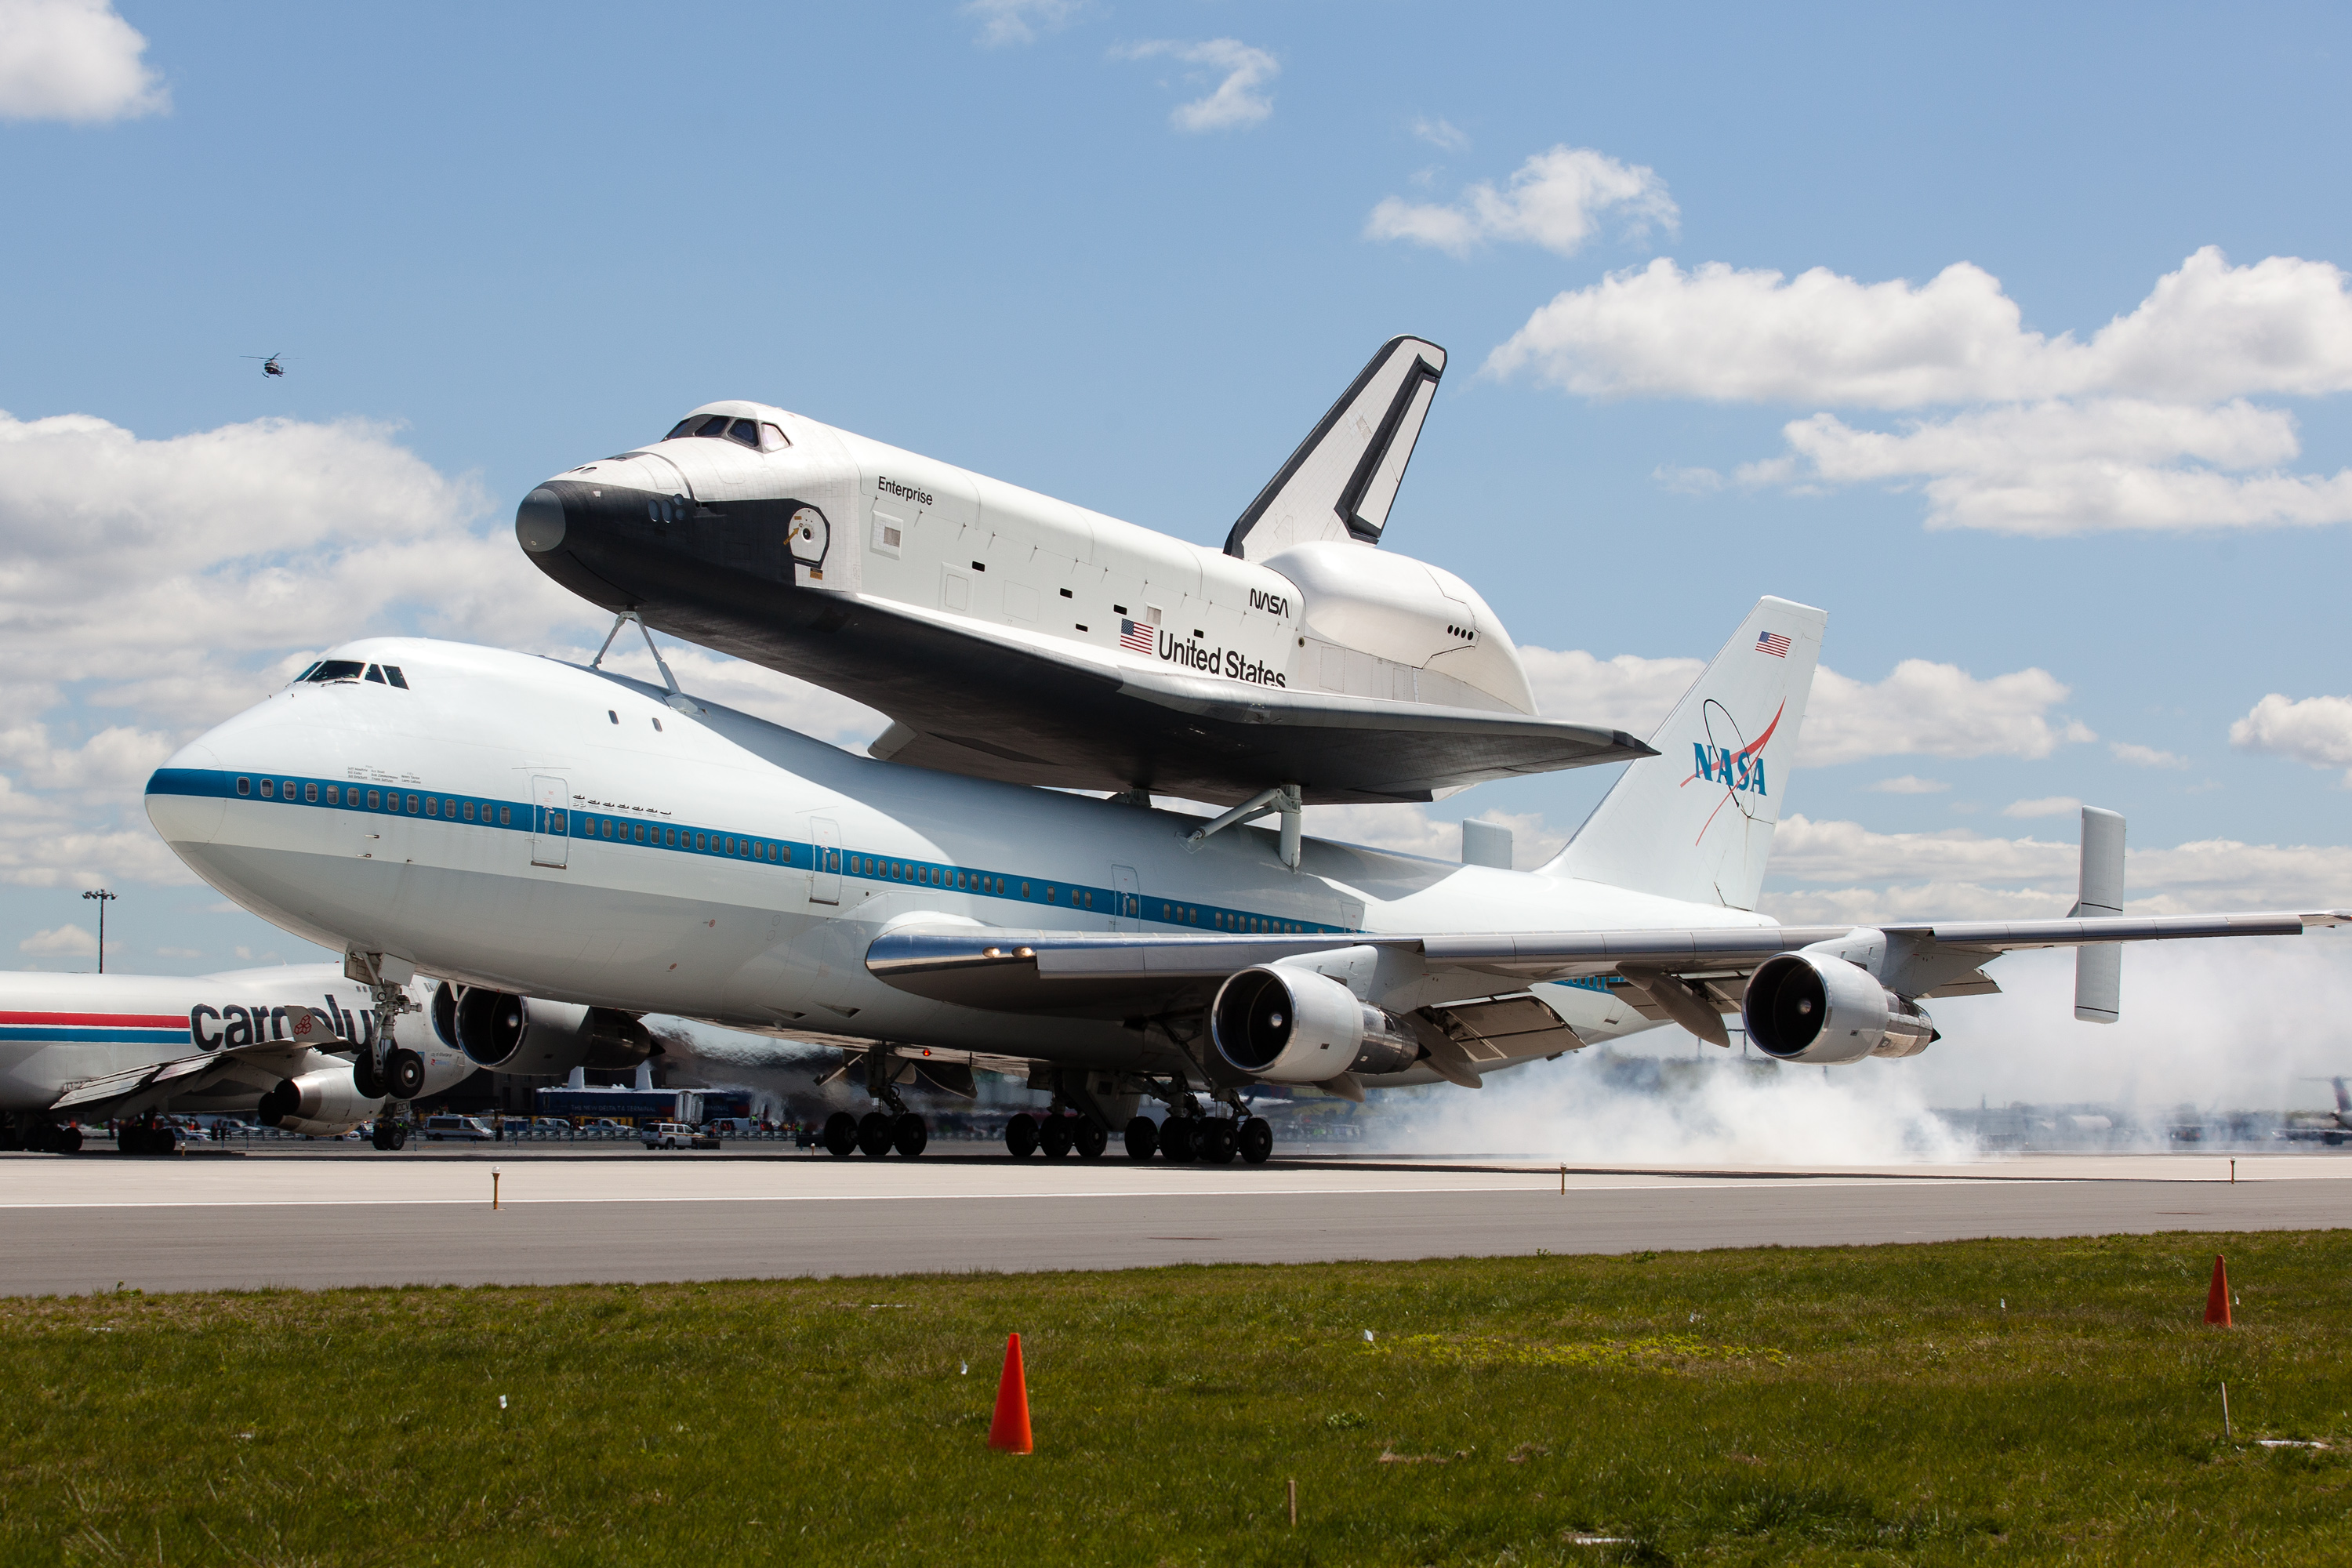 Space shuttle Enterprise zooms past NYC landmarks - The Blade